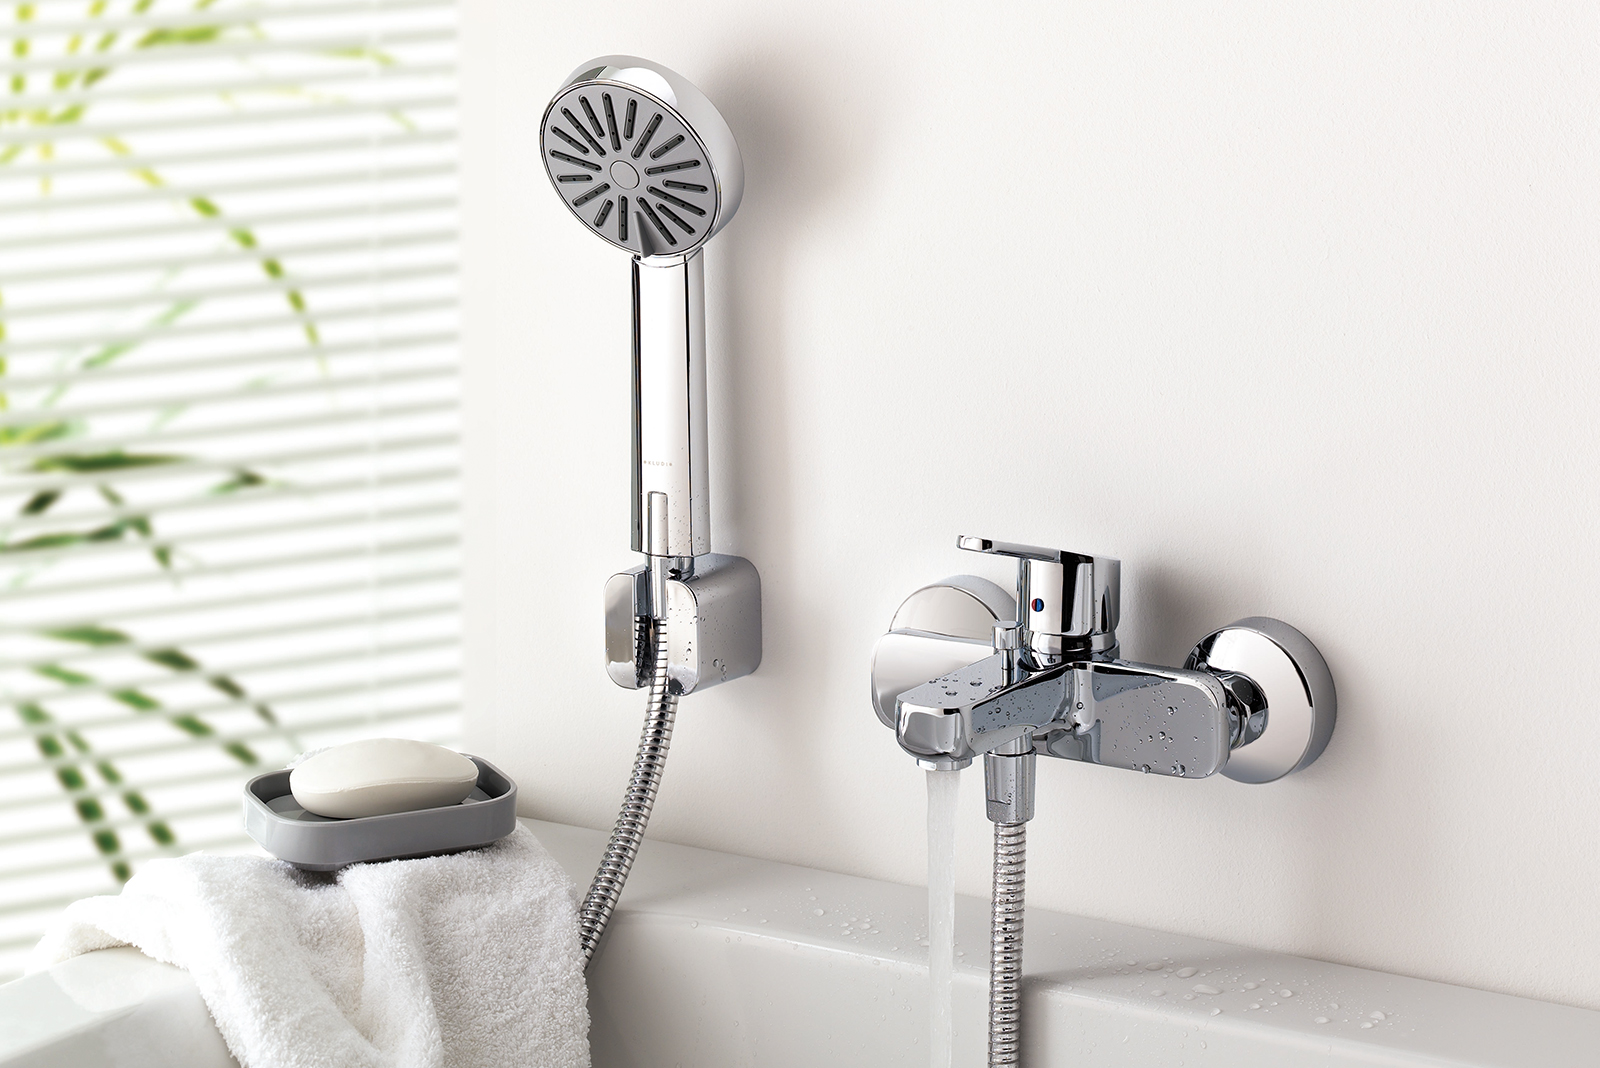 Cp Bathroom Fittings Manufacturers In Jalandhar: .::Universal Sanitary House::